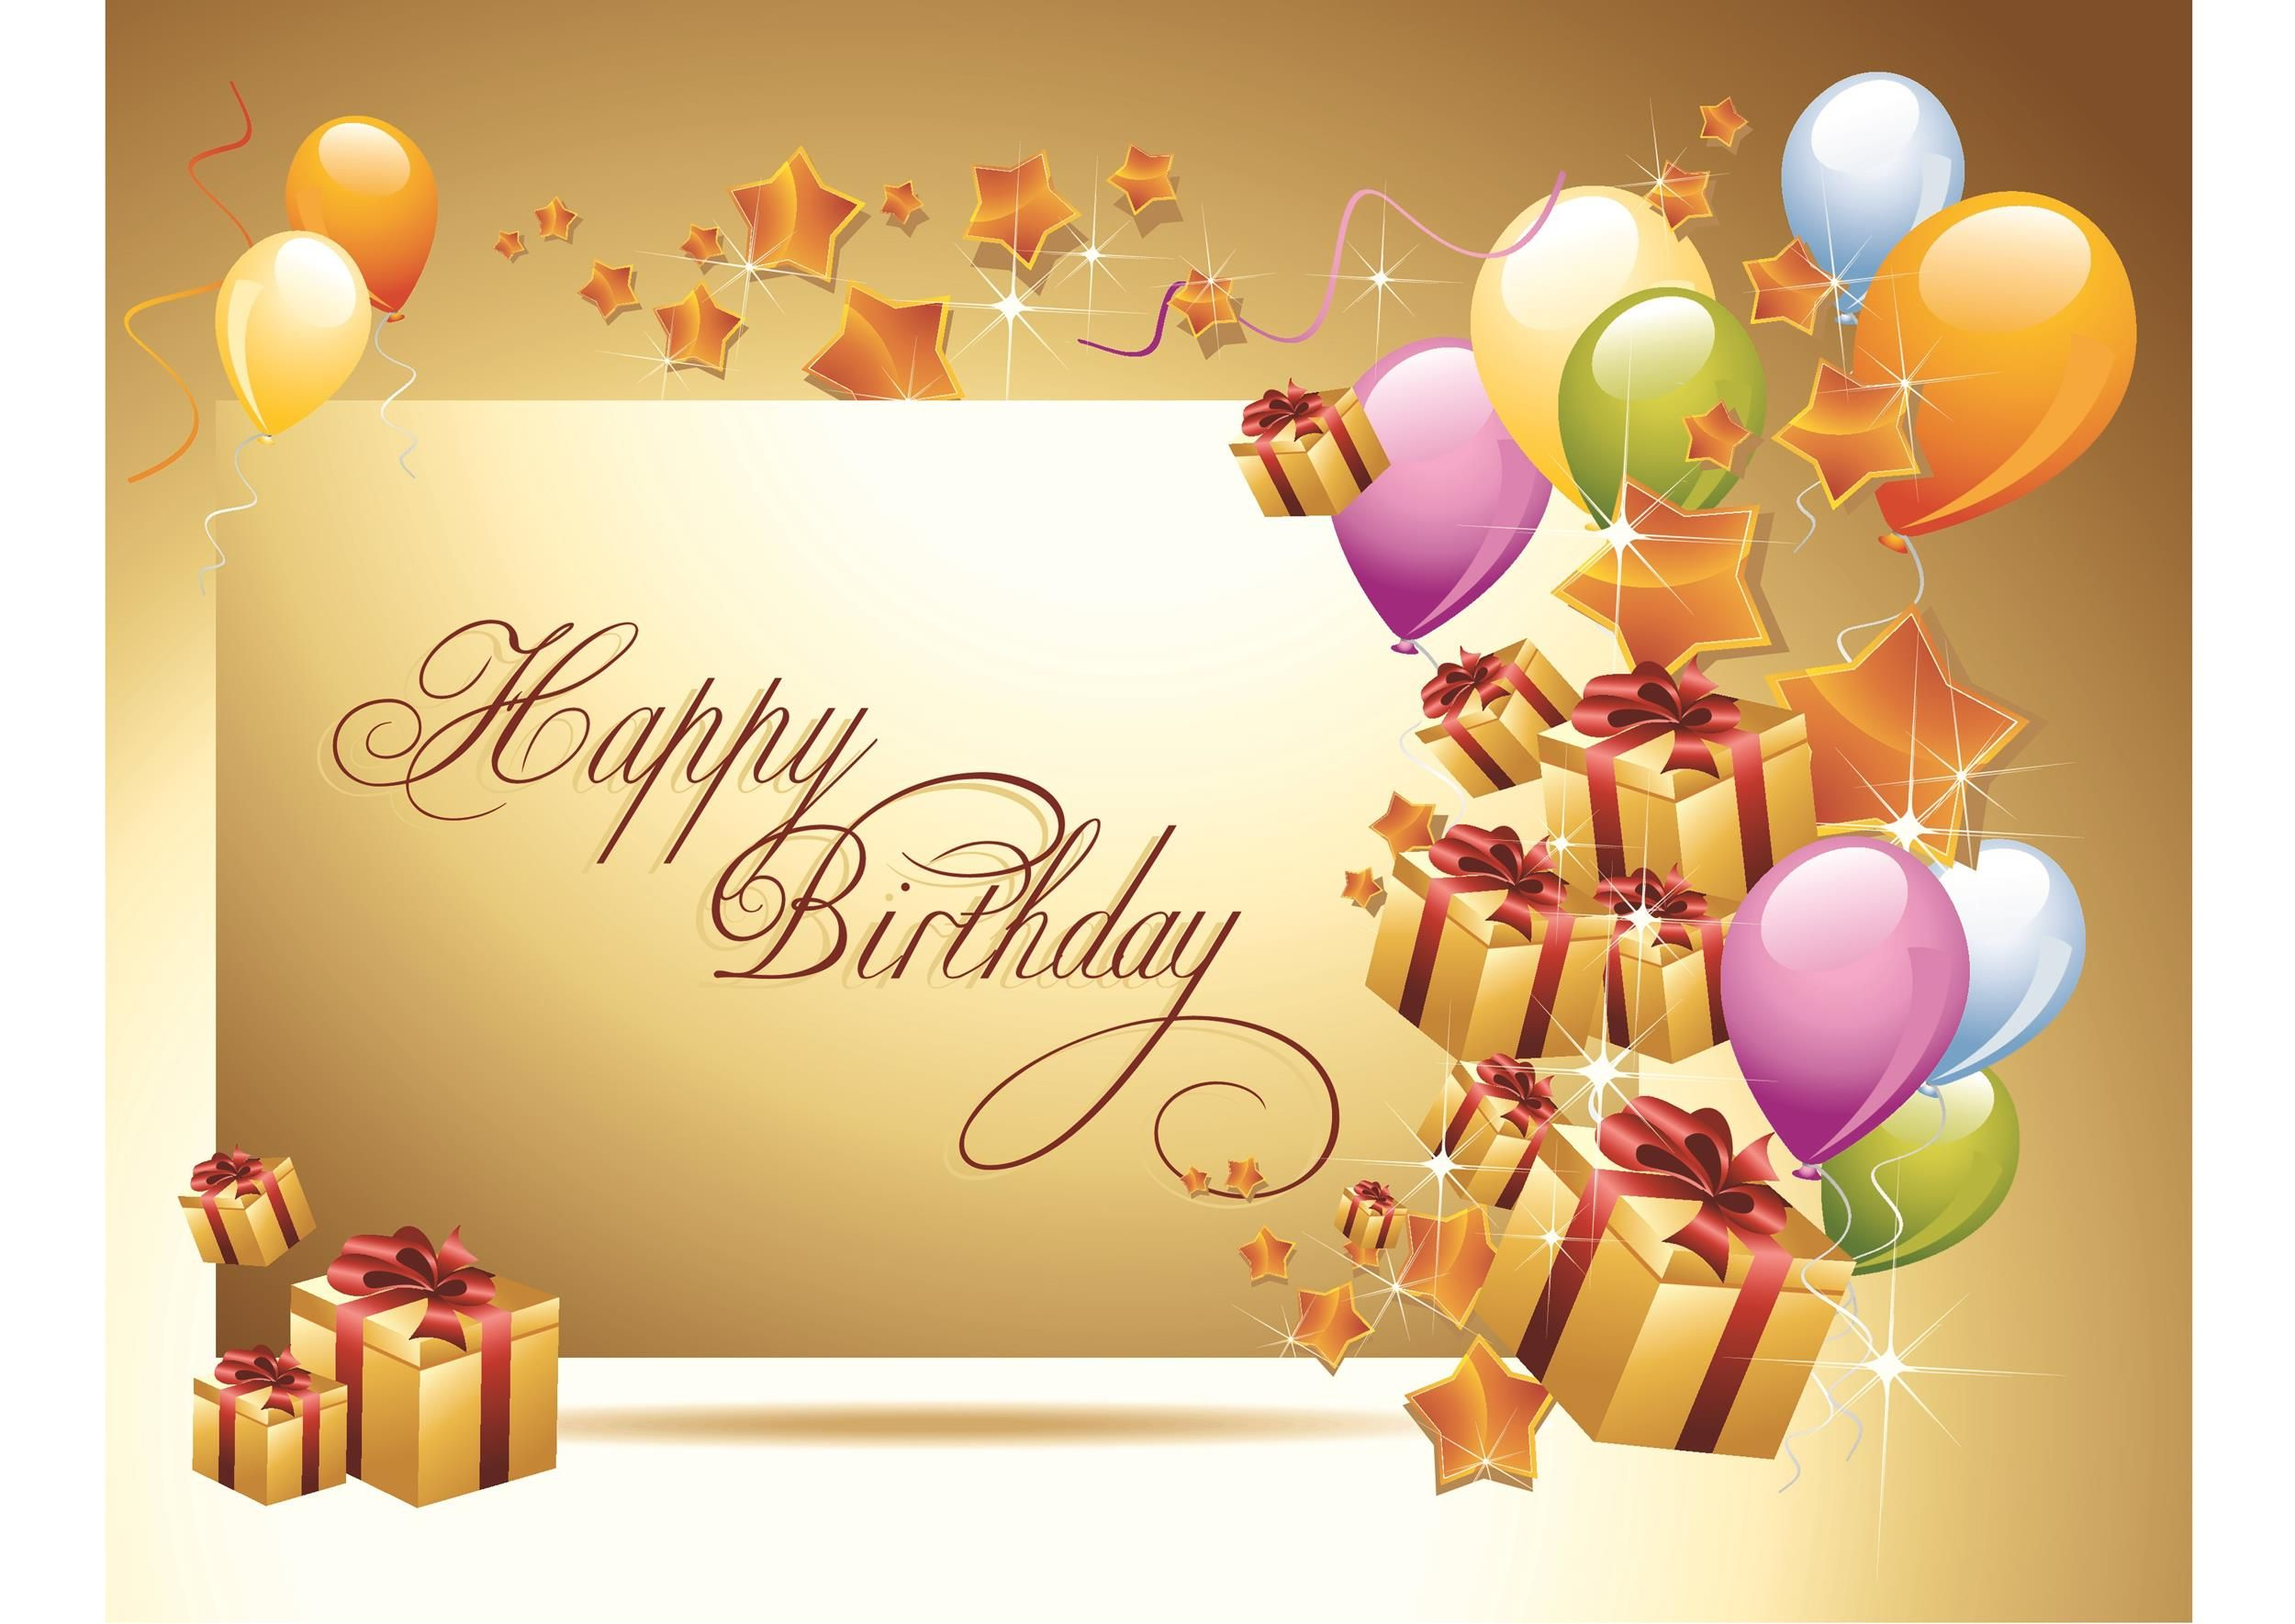 Birthday Card Template Hd (7) - TEMPLATES EXAMPLE  TEMPLATES